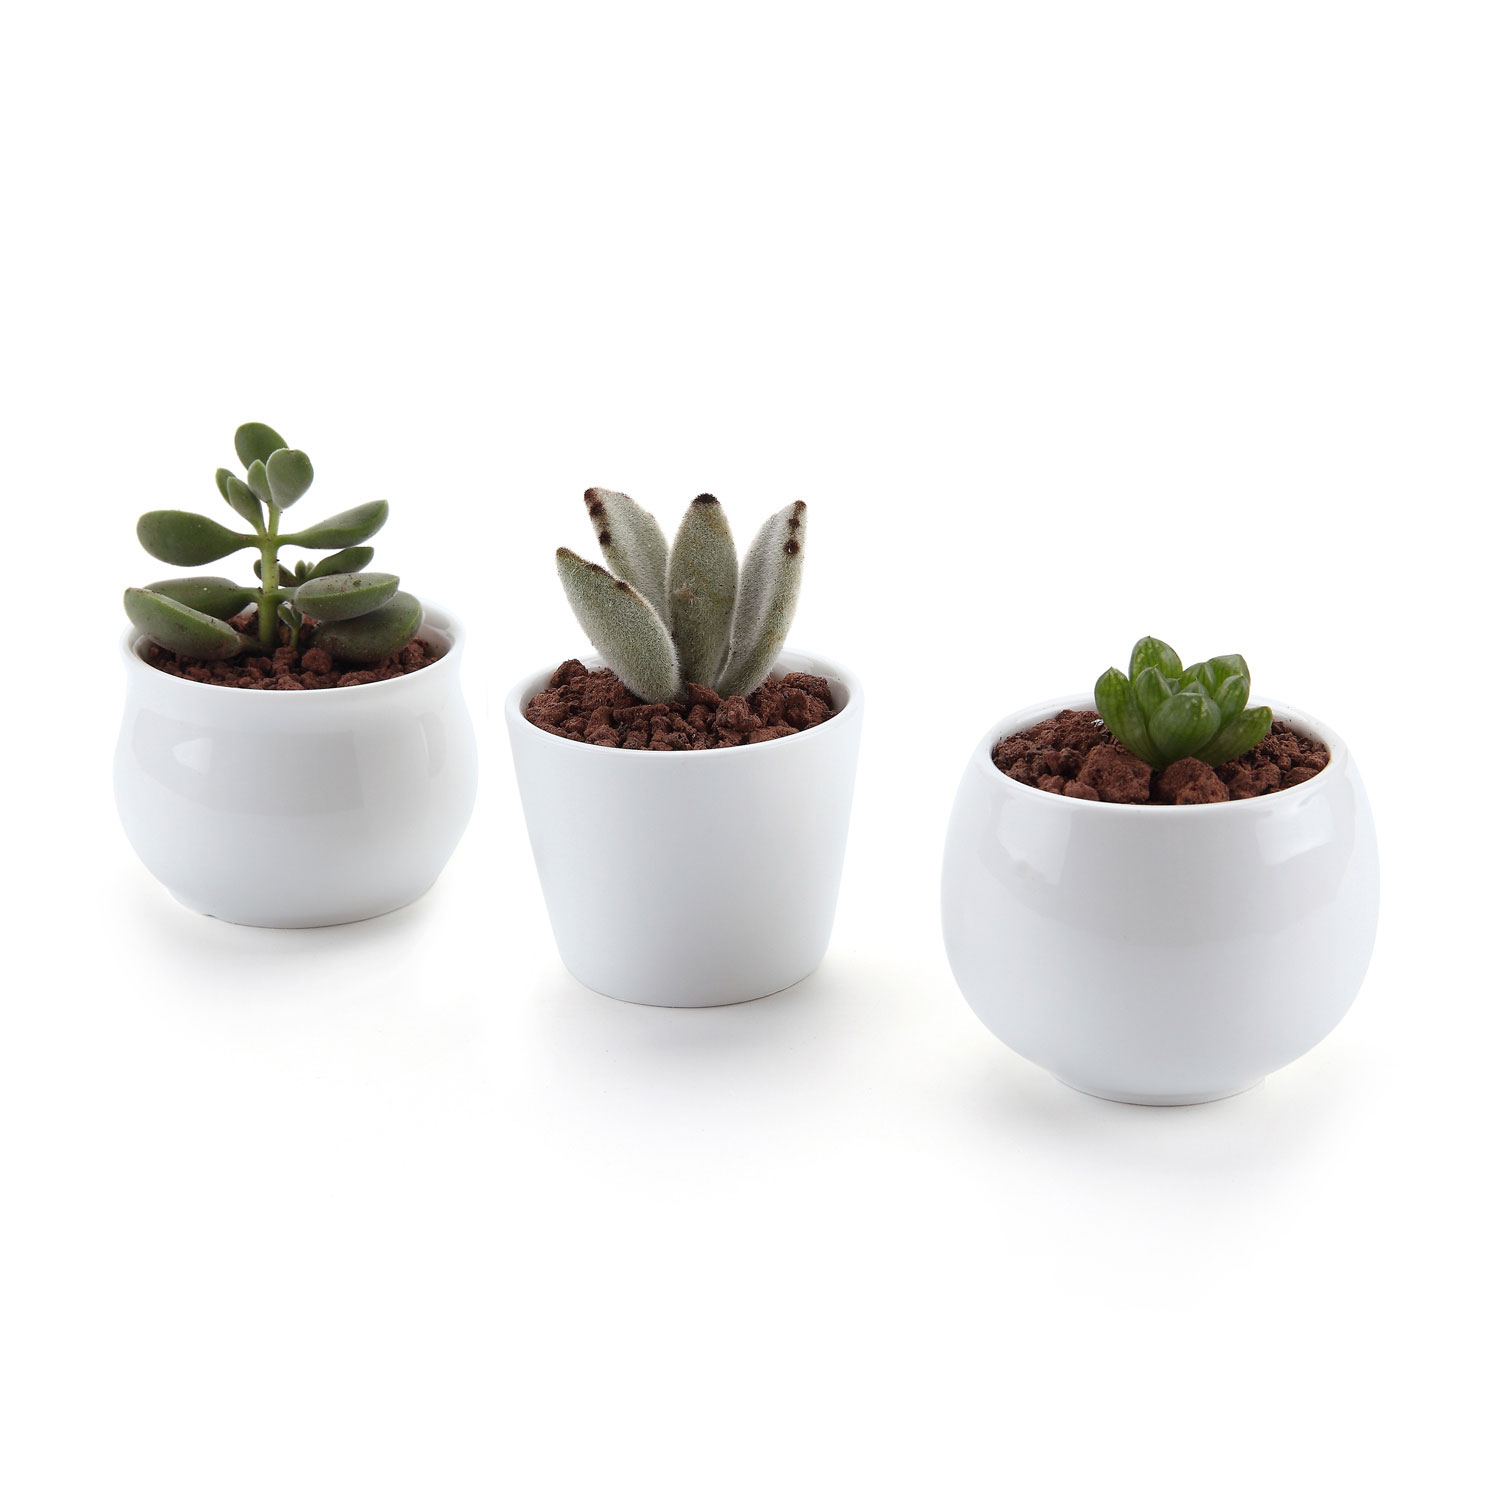 WITUSE White Square Garden Flower Plant Pot Mini Ceramic Bonsai Pots ...